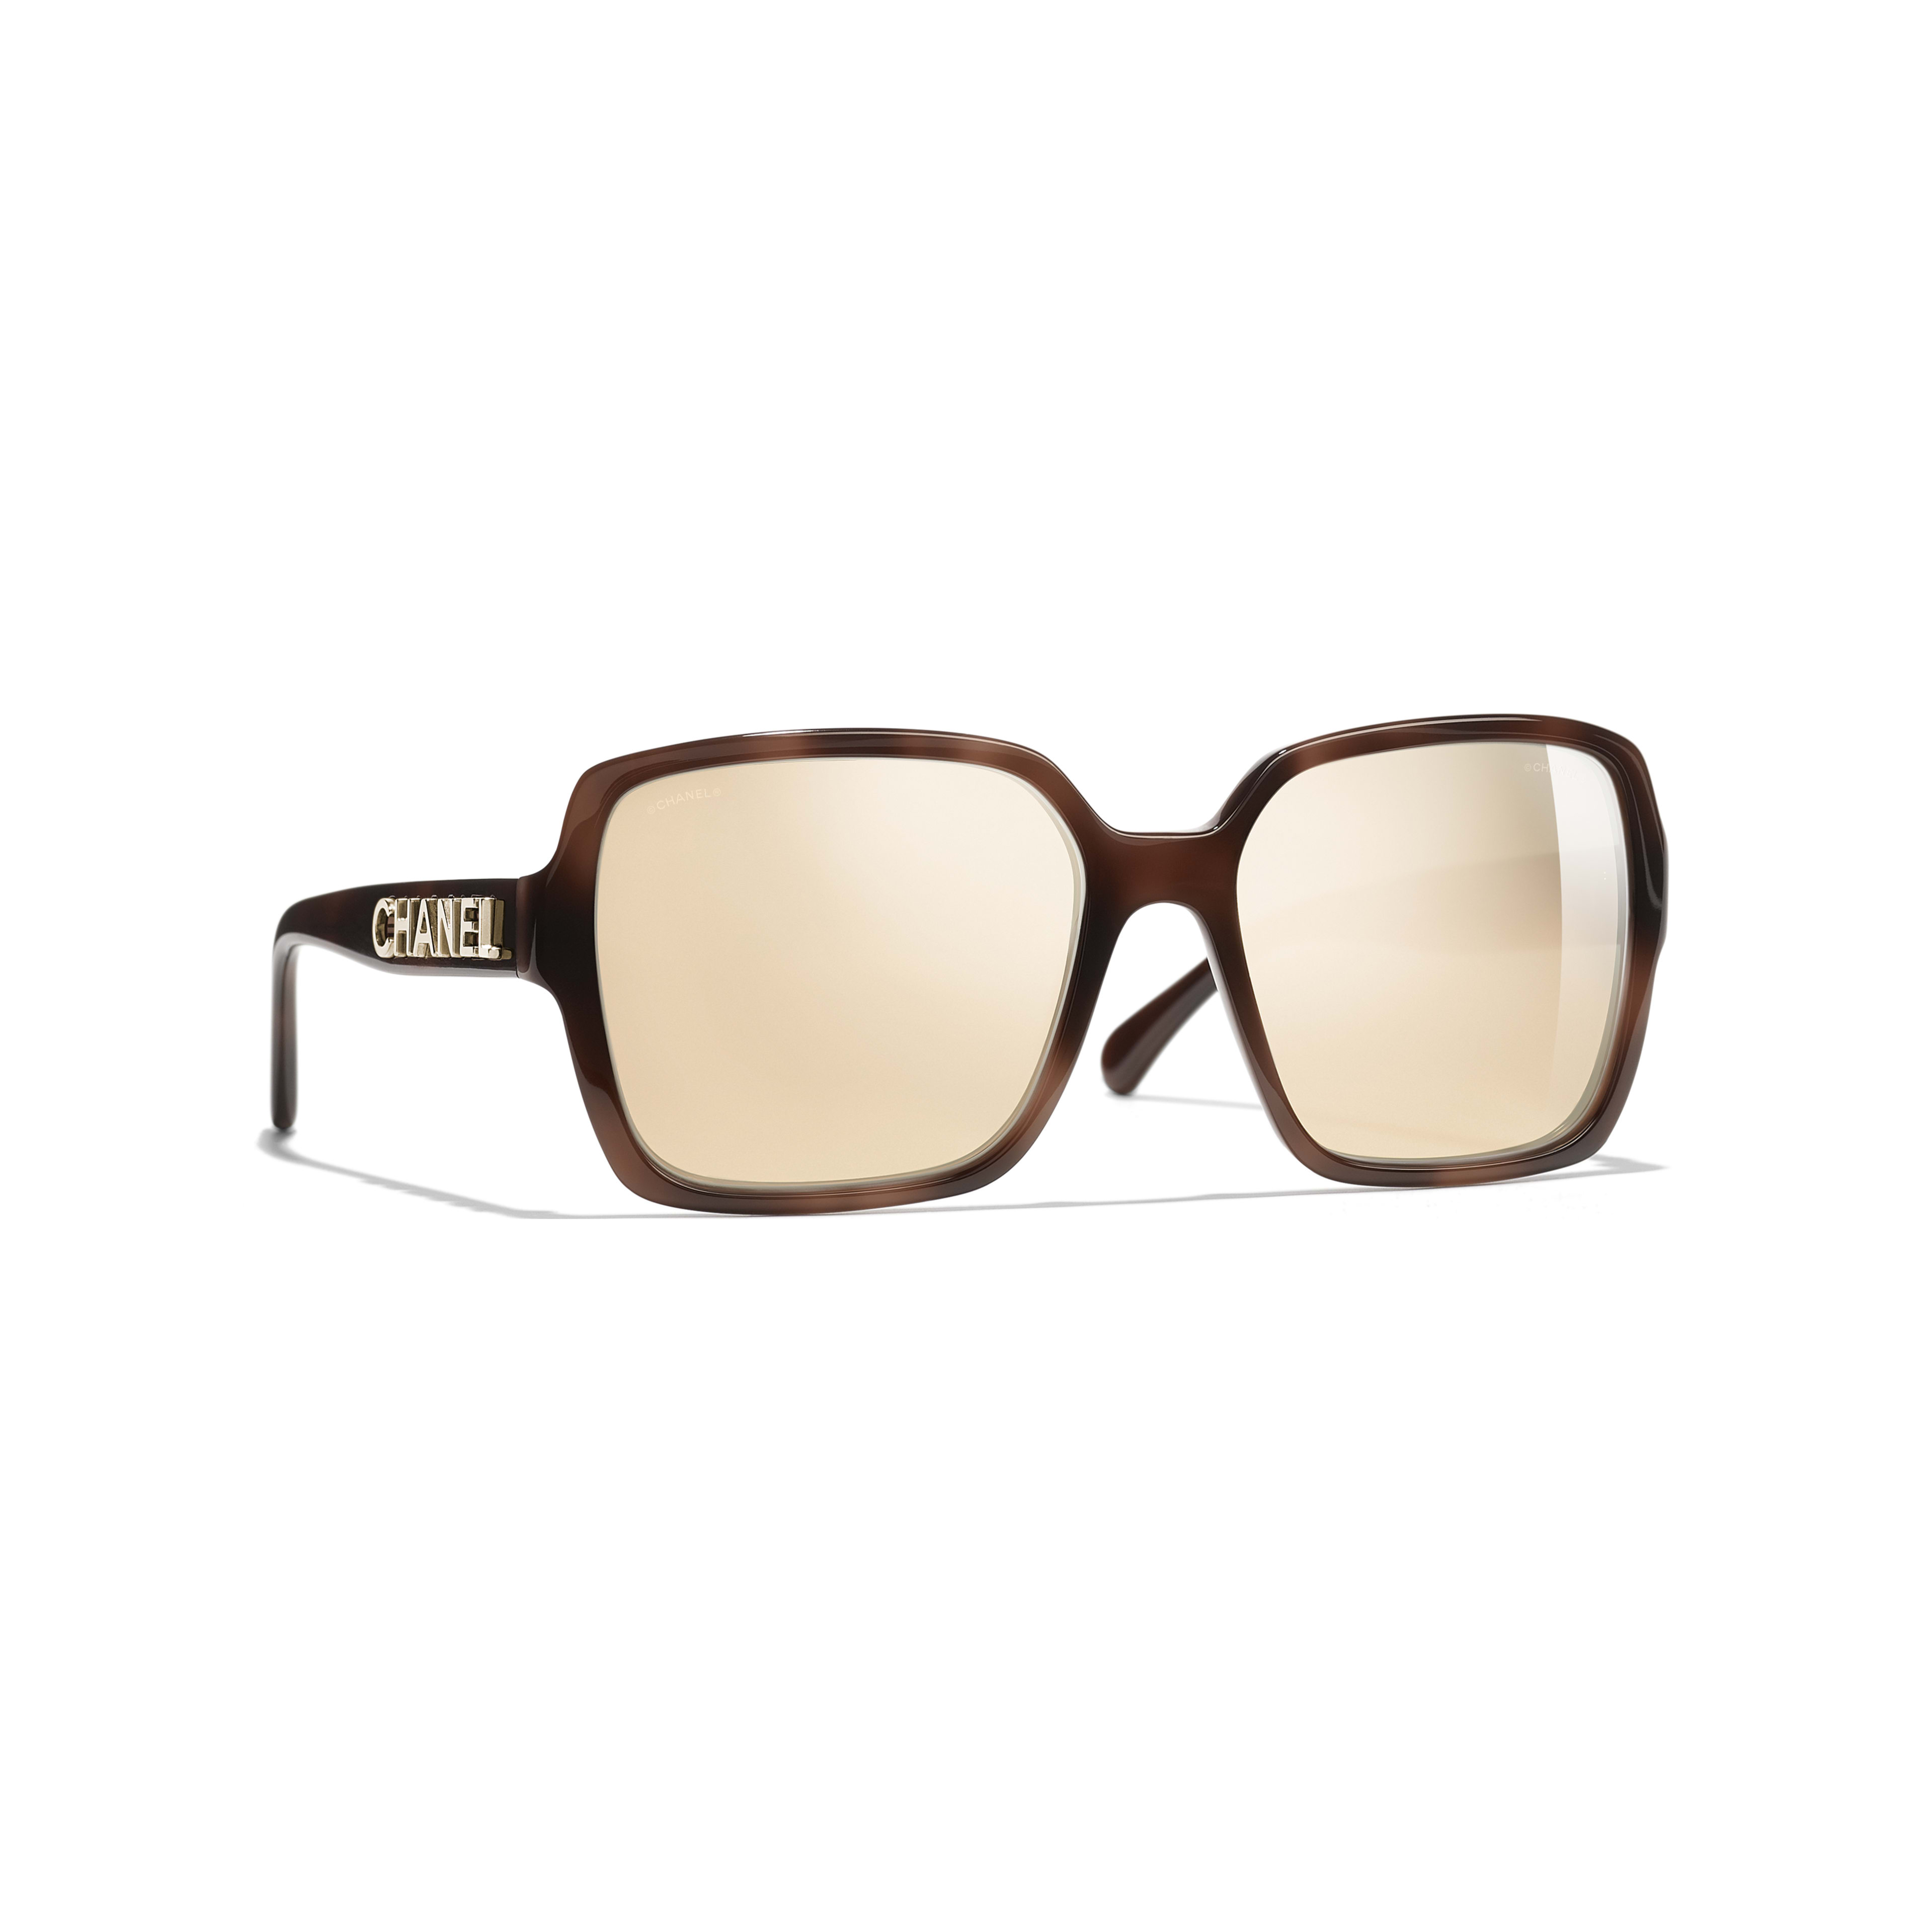 8628994a098 Square Sunglasses - Brown - Acetate - Gold Lenses - Default view - see full  sized ...